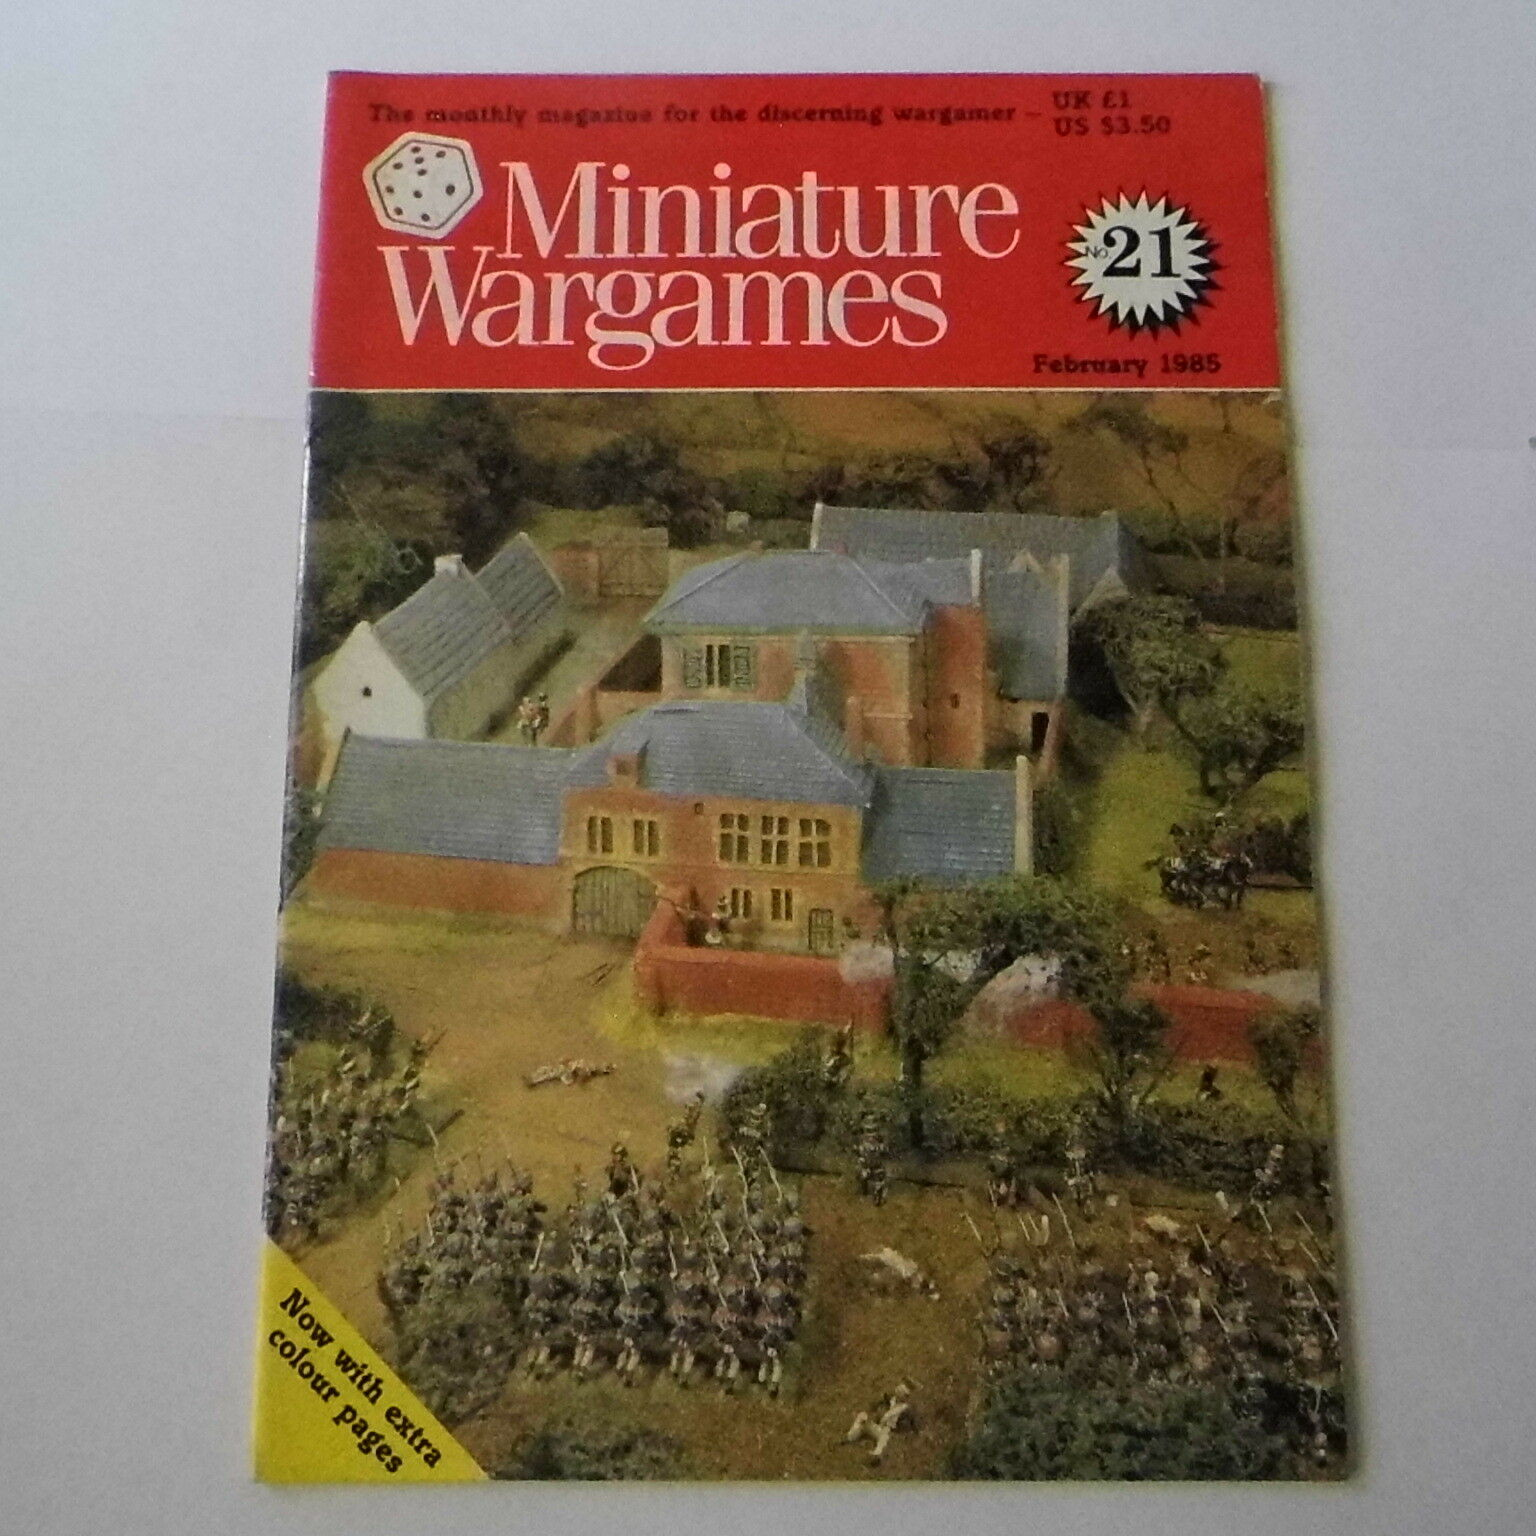 RARE MINIATURE WARGAMES ISSUE 21 - FEBRUARY 1985 - THE FIRST BOER WAR, 1880-1881